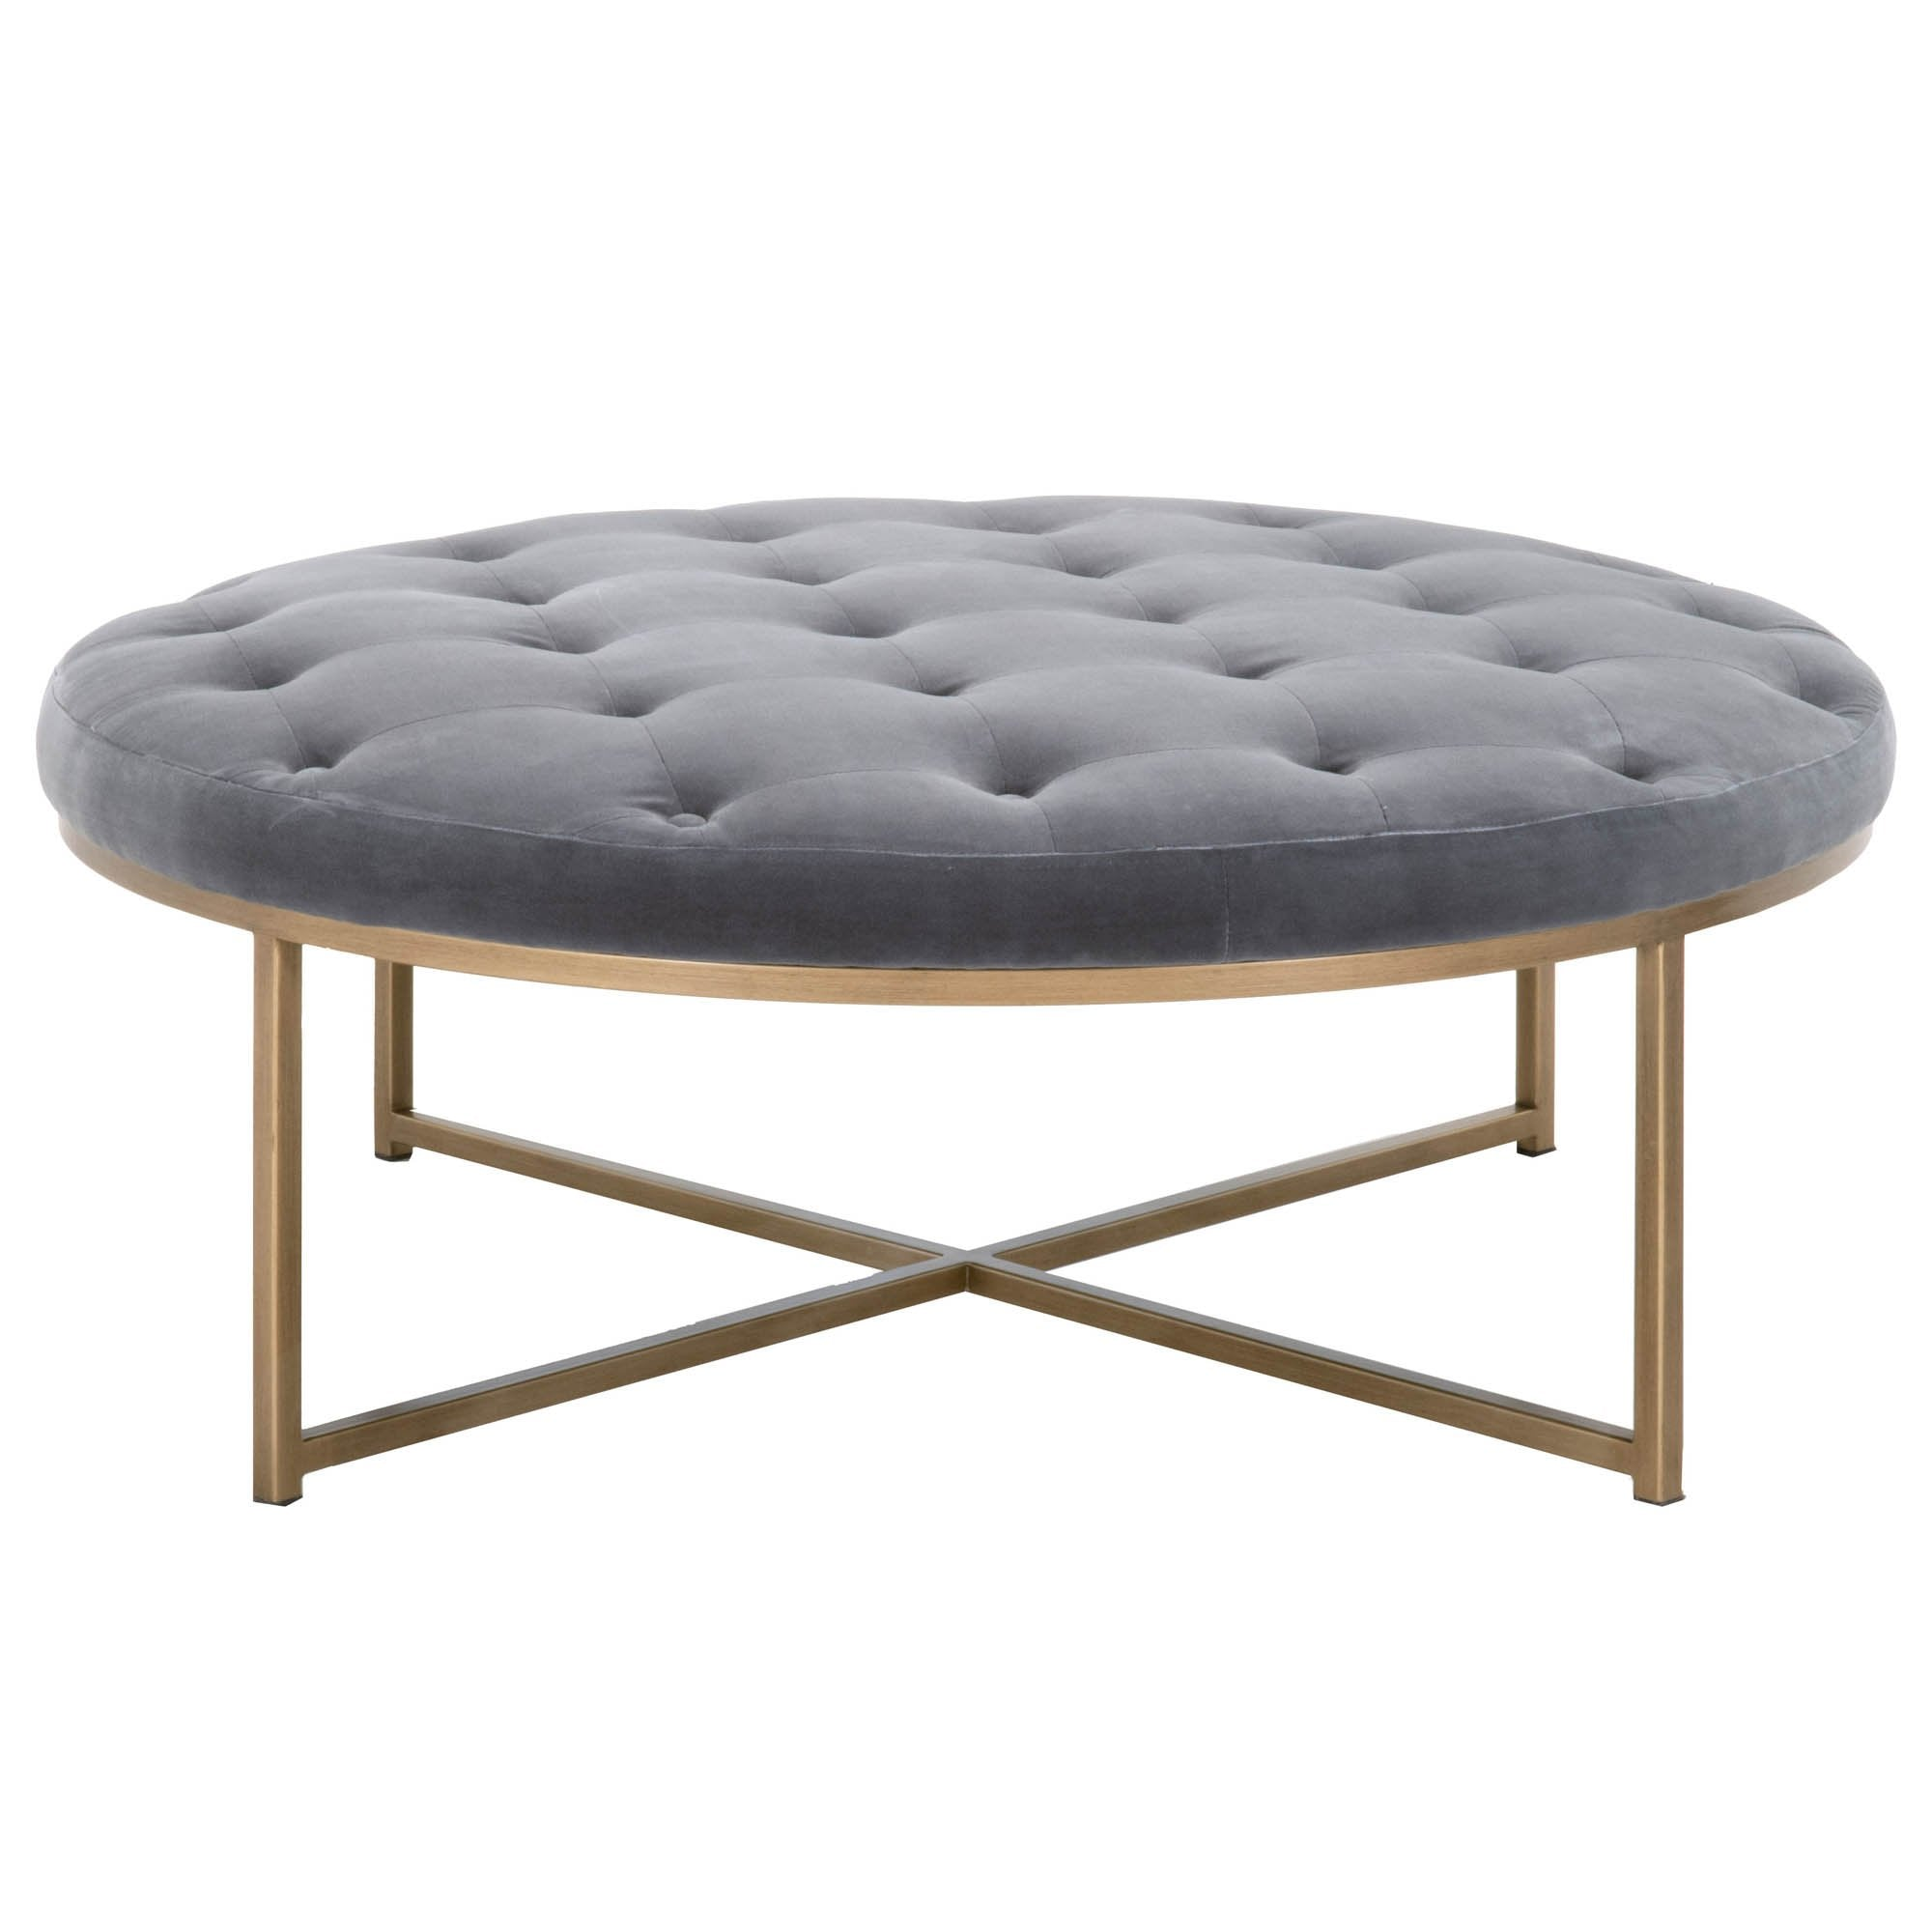 Rochelle Upholstered Coffee Table in Blush Gray Velvet